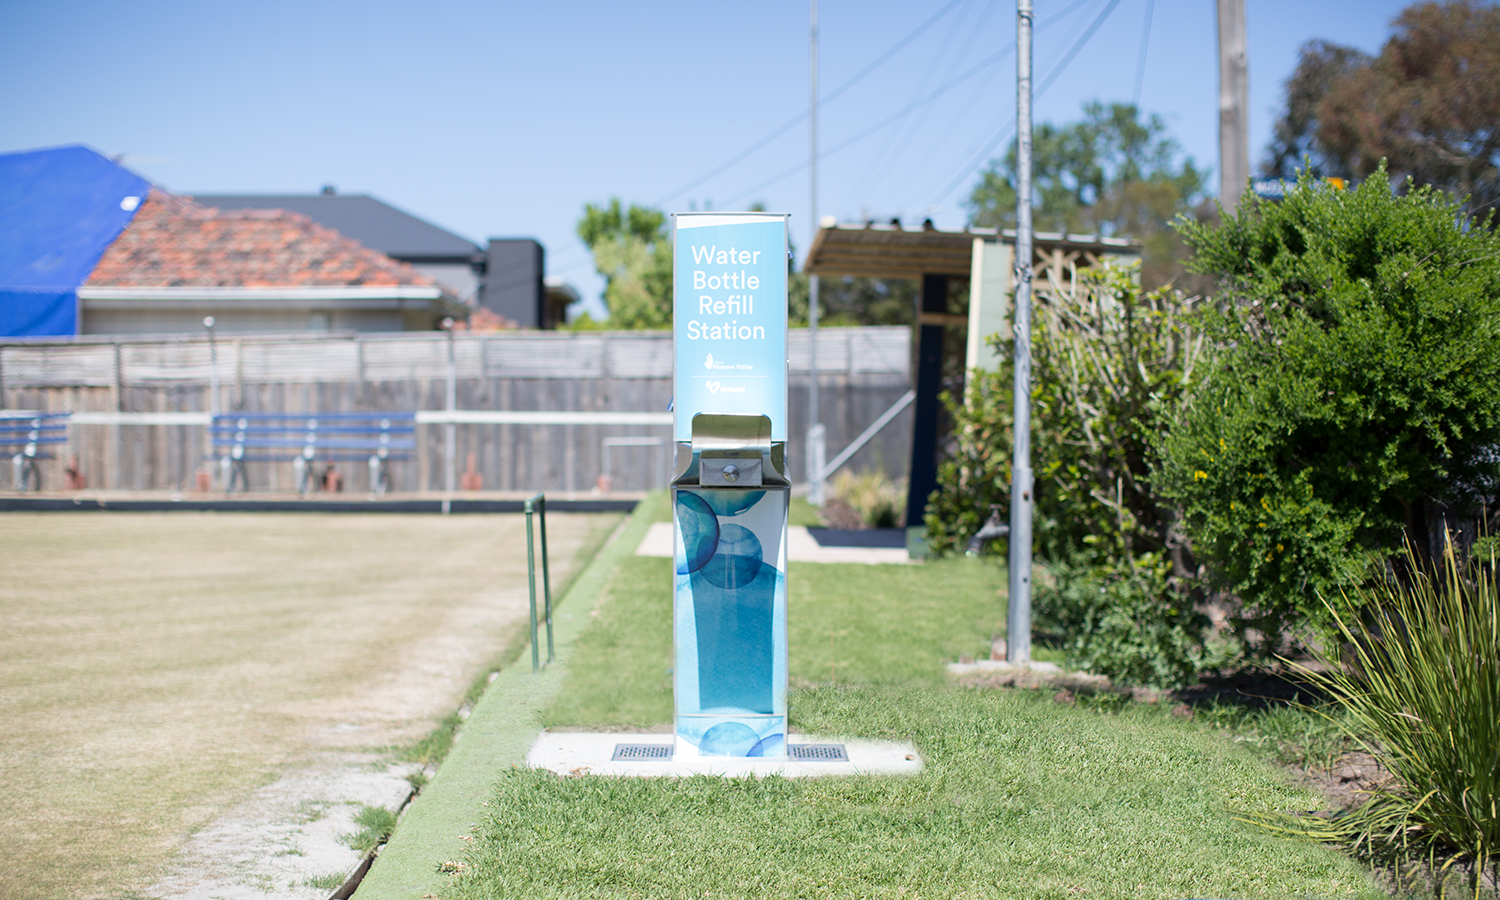 CIVIQ provides The City of Moonee Valley access to free drinking water